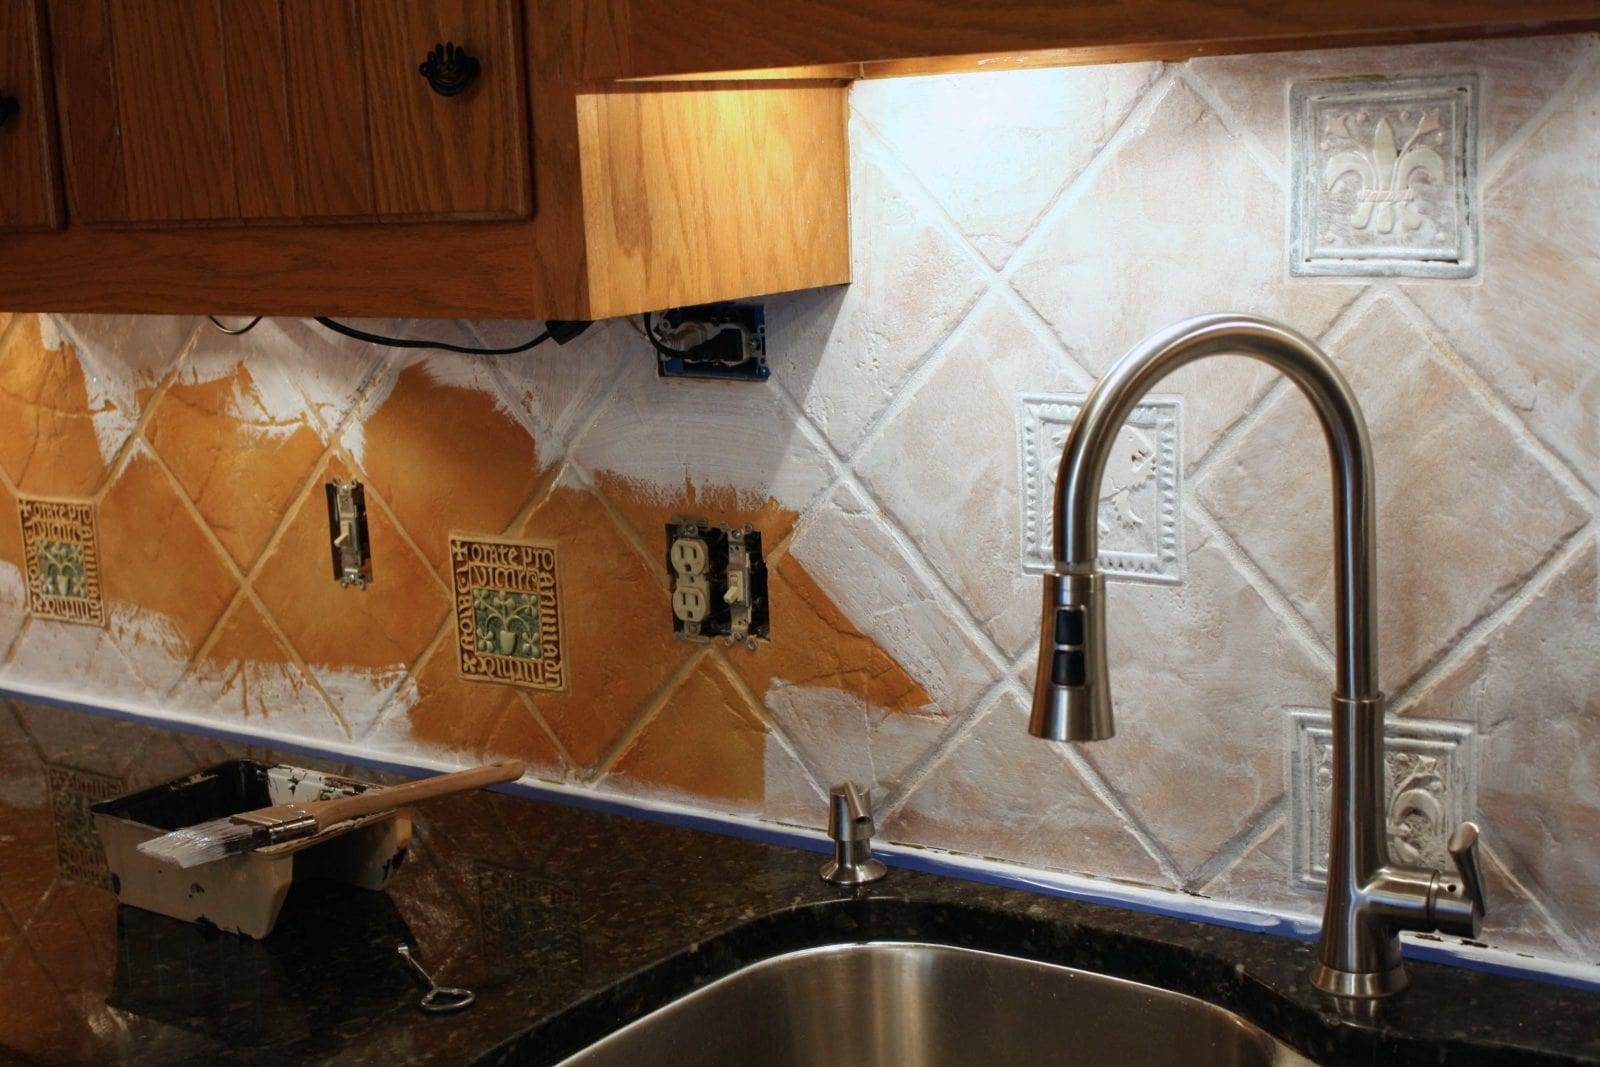 How to paint a tile backsplash my budget solution designer trapped you can paint a tile backsplash talk about a thrifty update full tutorial by dailygadgetfo Choice Image